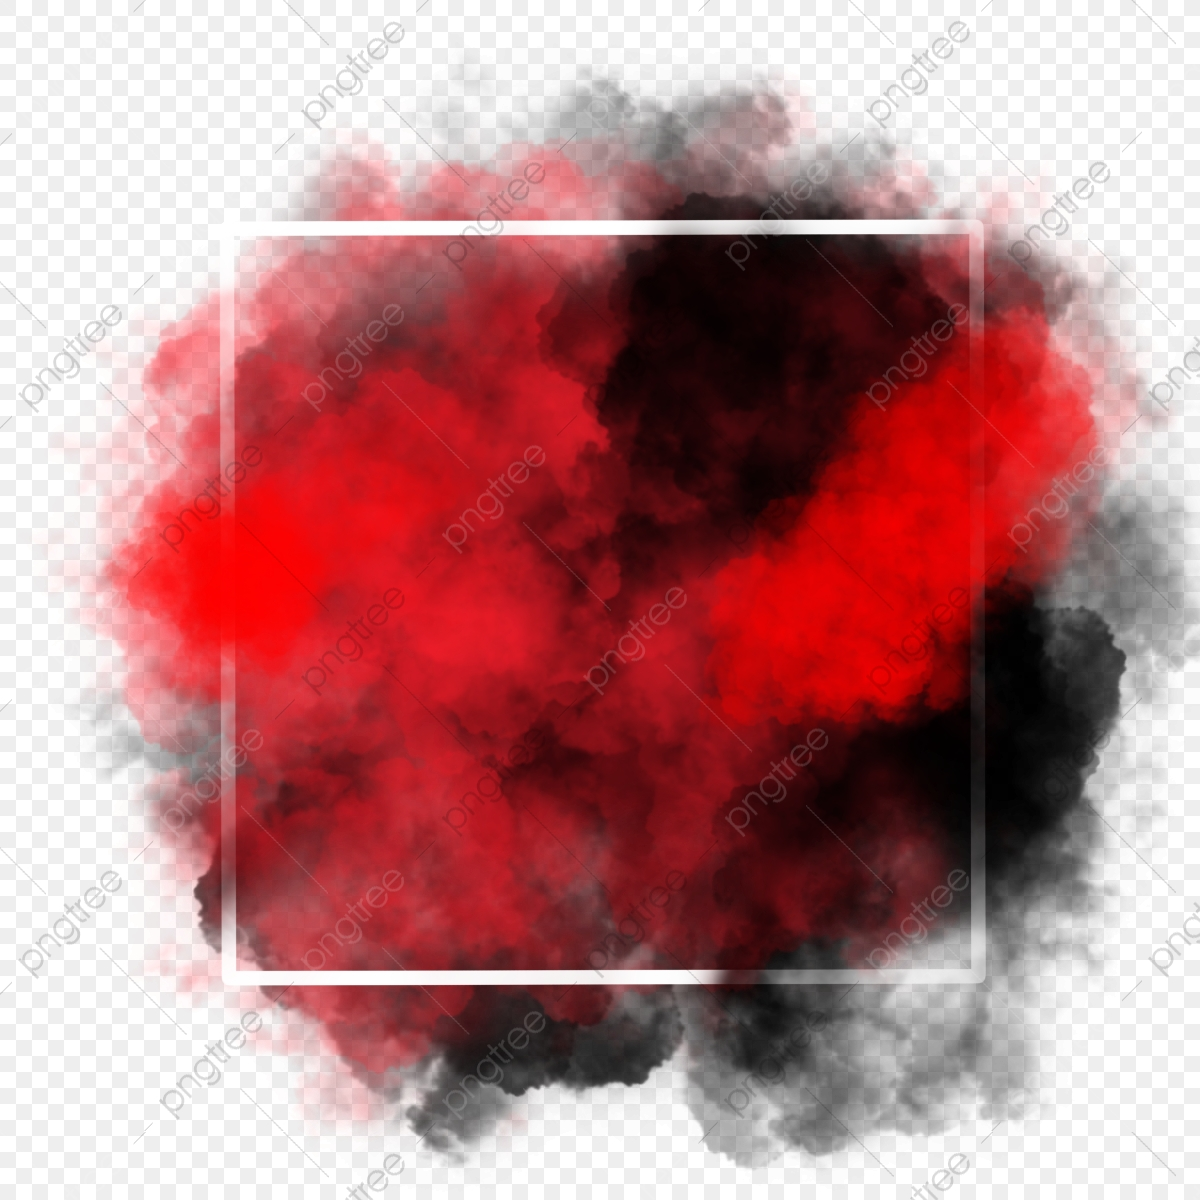 red smoke png images vector and psd files free download on pngtree https pngtree com freepng black red smoke effect 5313187 html